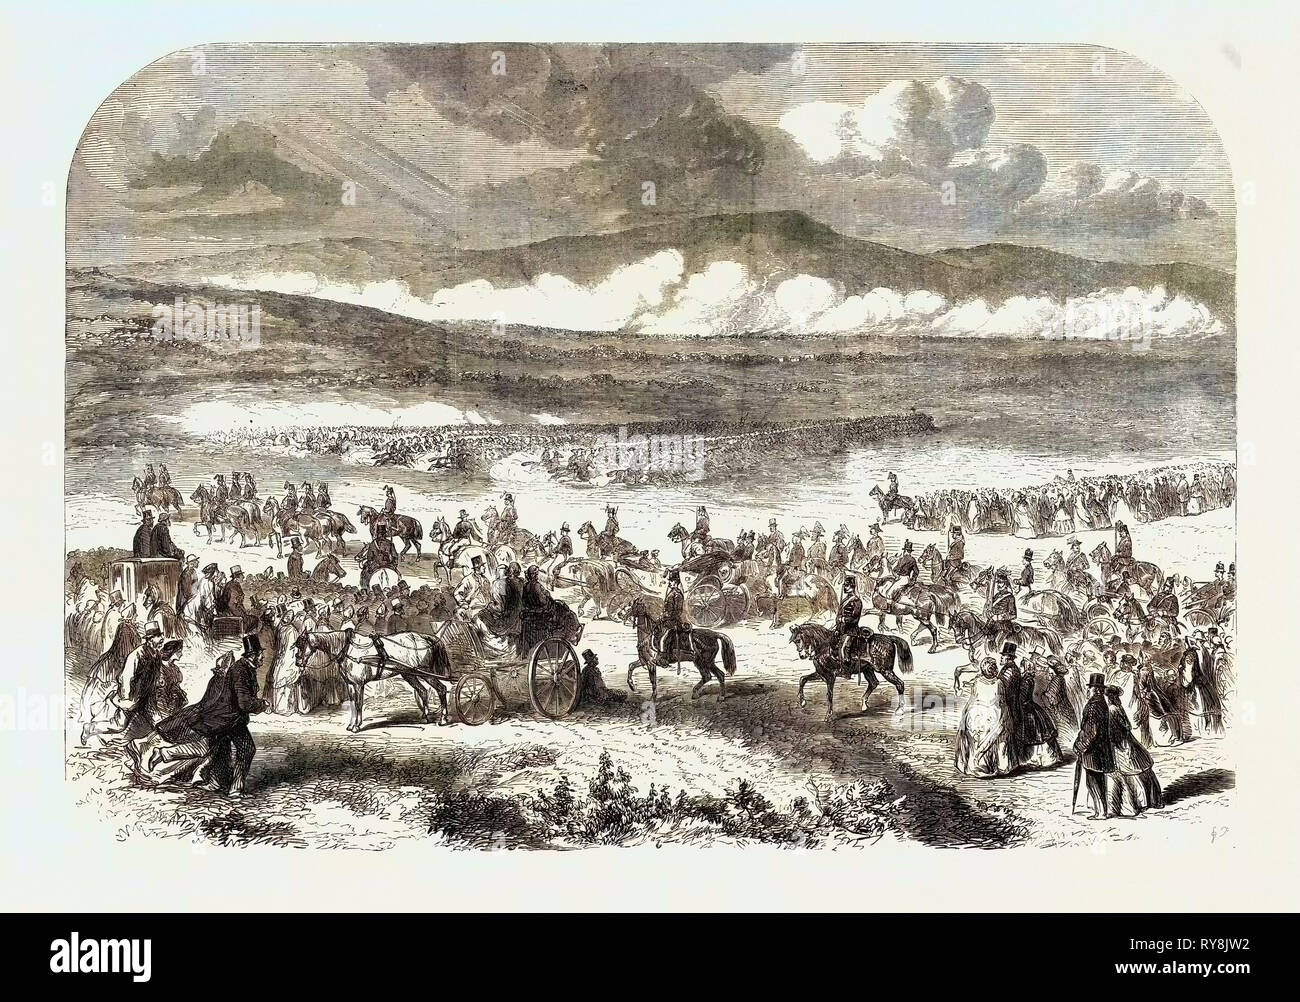 The Queen's Visit to Ireland: Review by Her Majesty on the Curragh of Kildare Charge of Cavalry - Stock Image